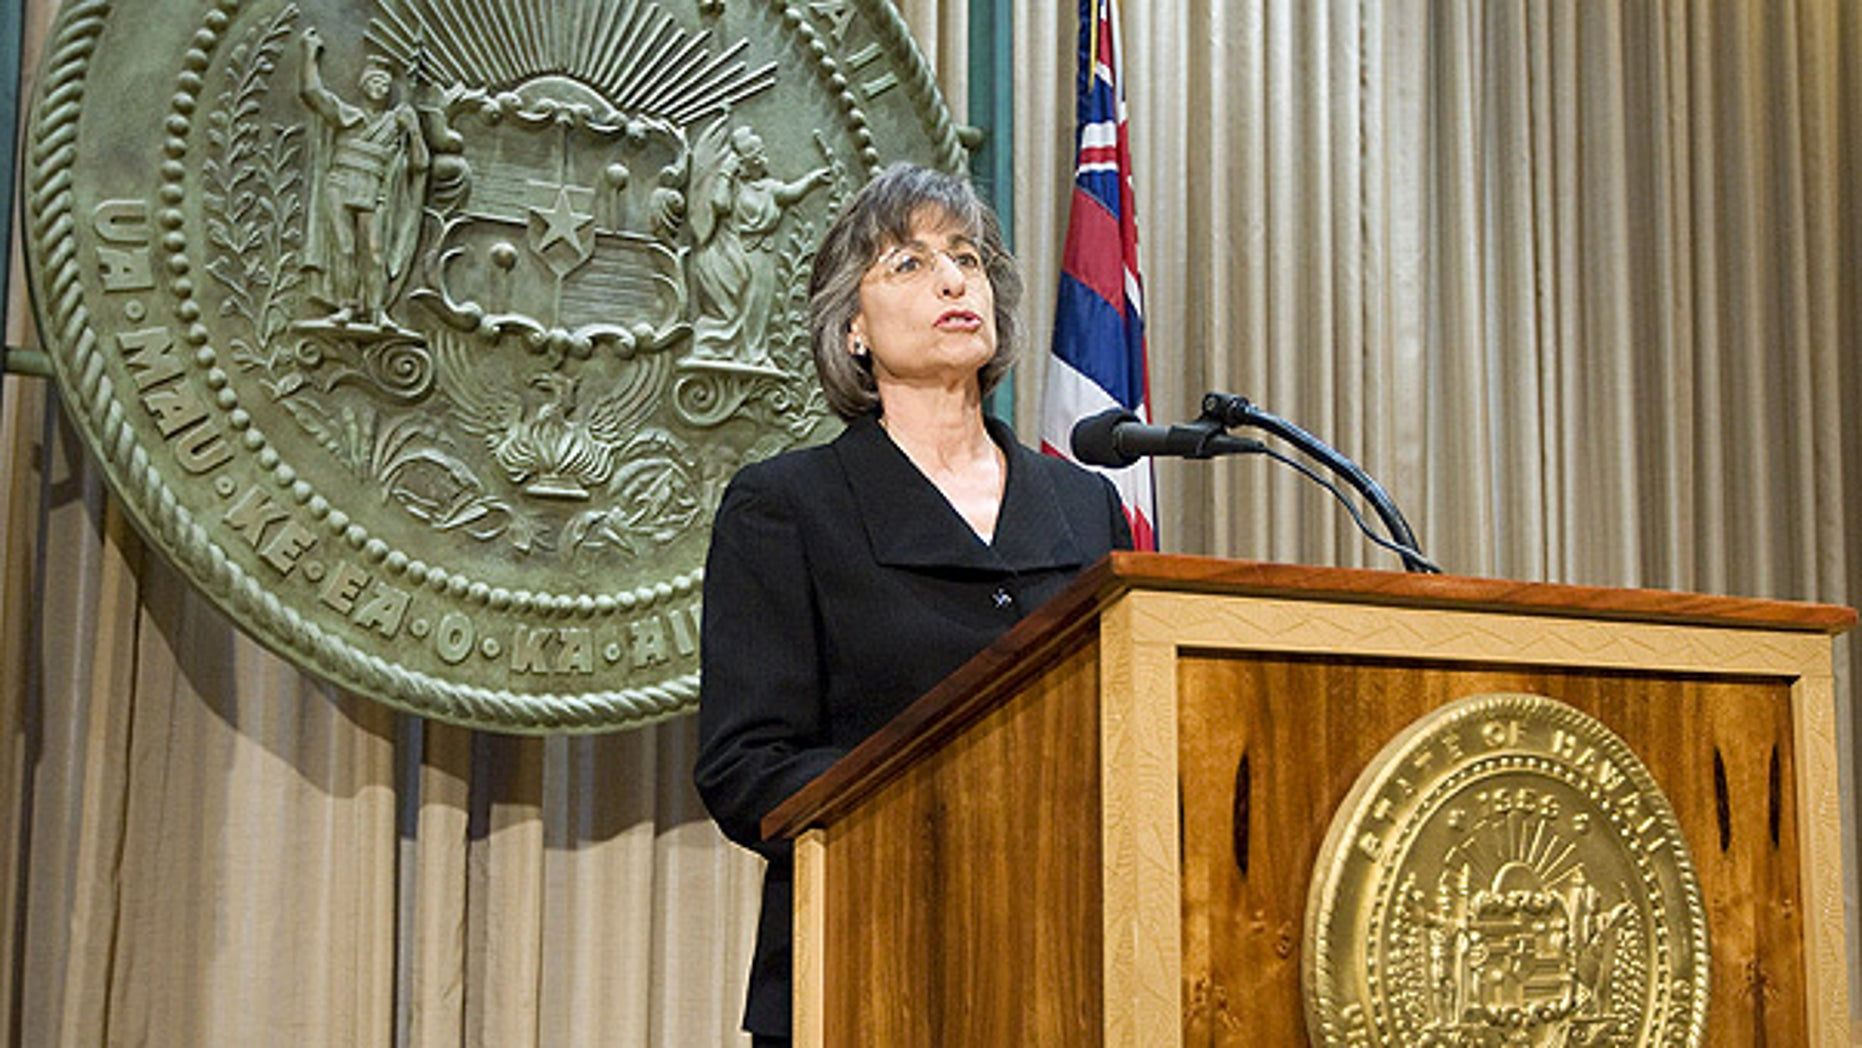 July 6: Gov. Linda Lingle holds a news conference in her office at the Hawaii State Capitol building in Honolulu.